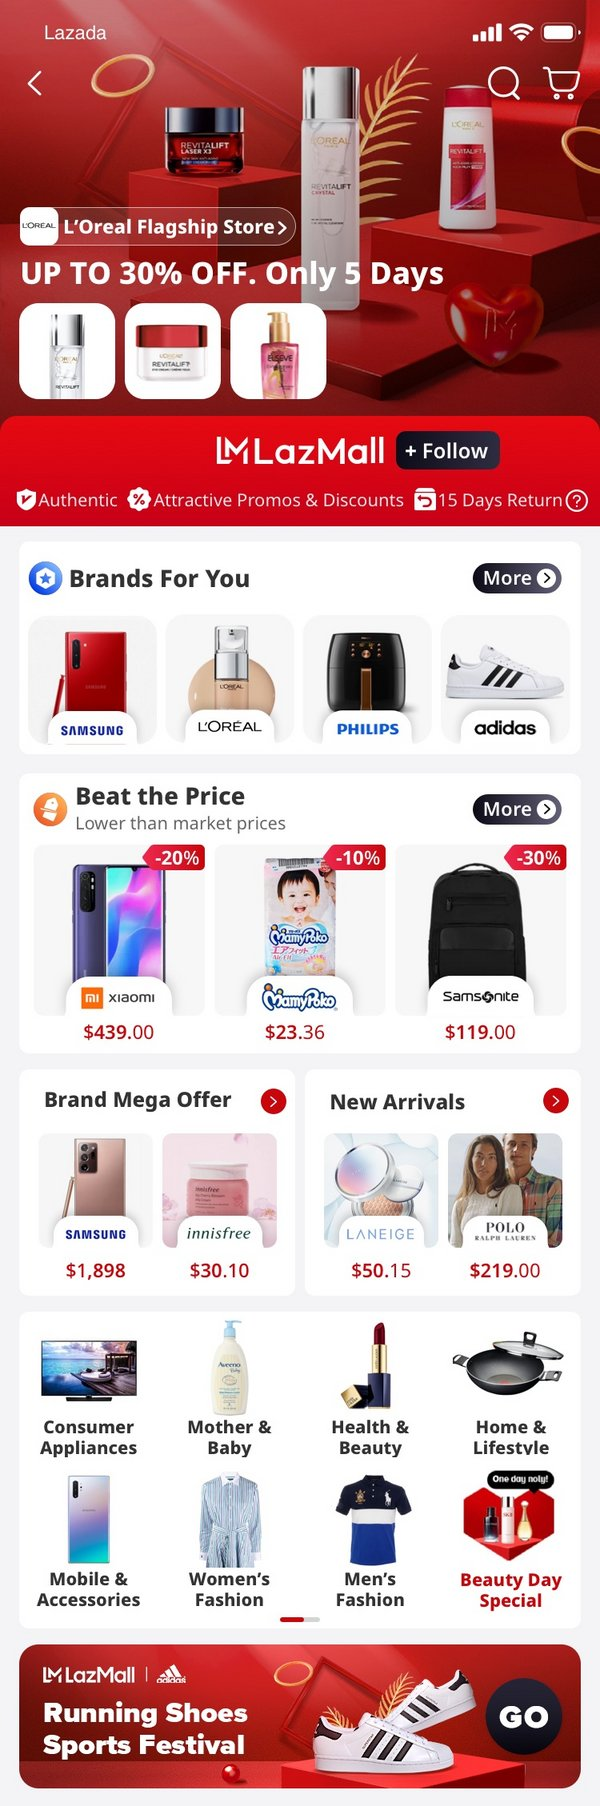 Lazada's LazMall unveils new features, including a new visual.